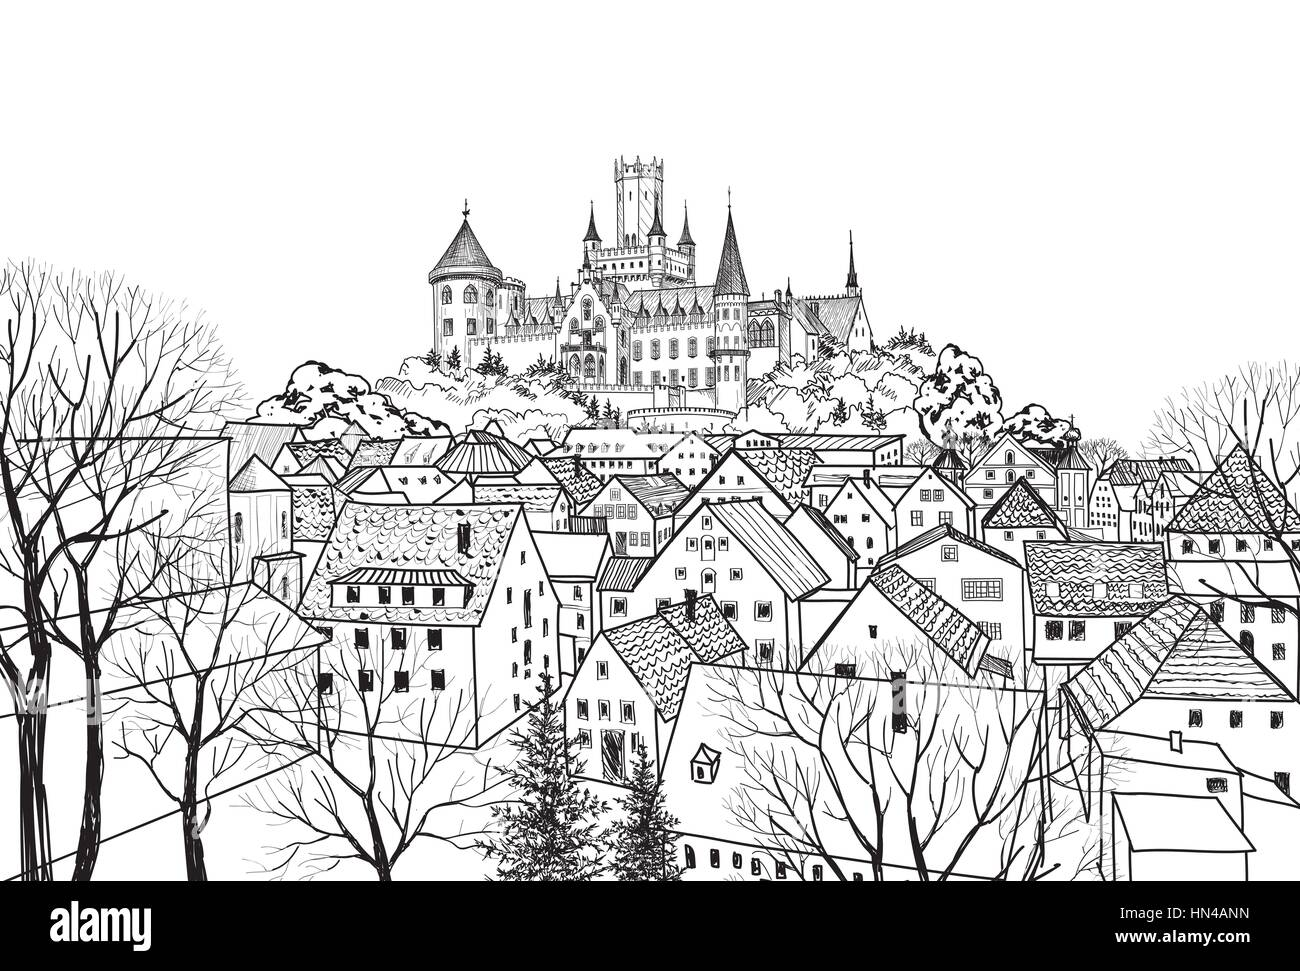 Old city view with castle on background medieval european castle landscape pencil drawn vector